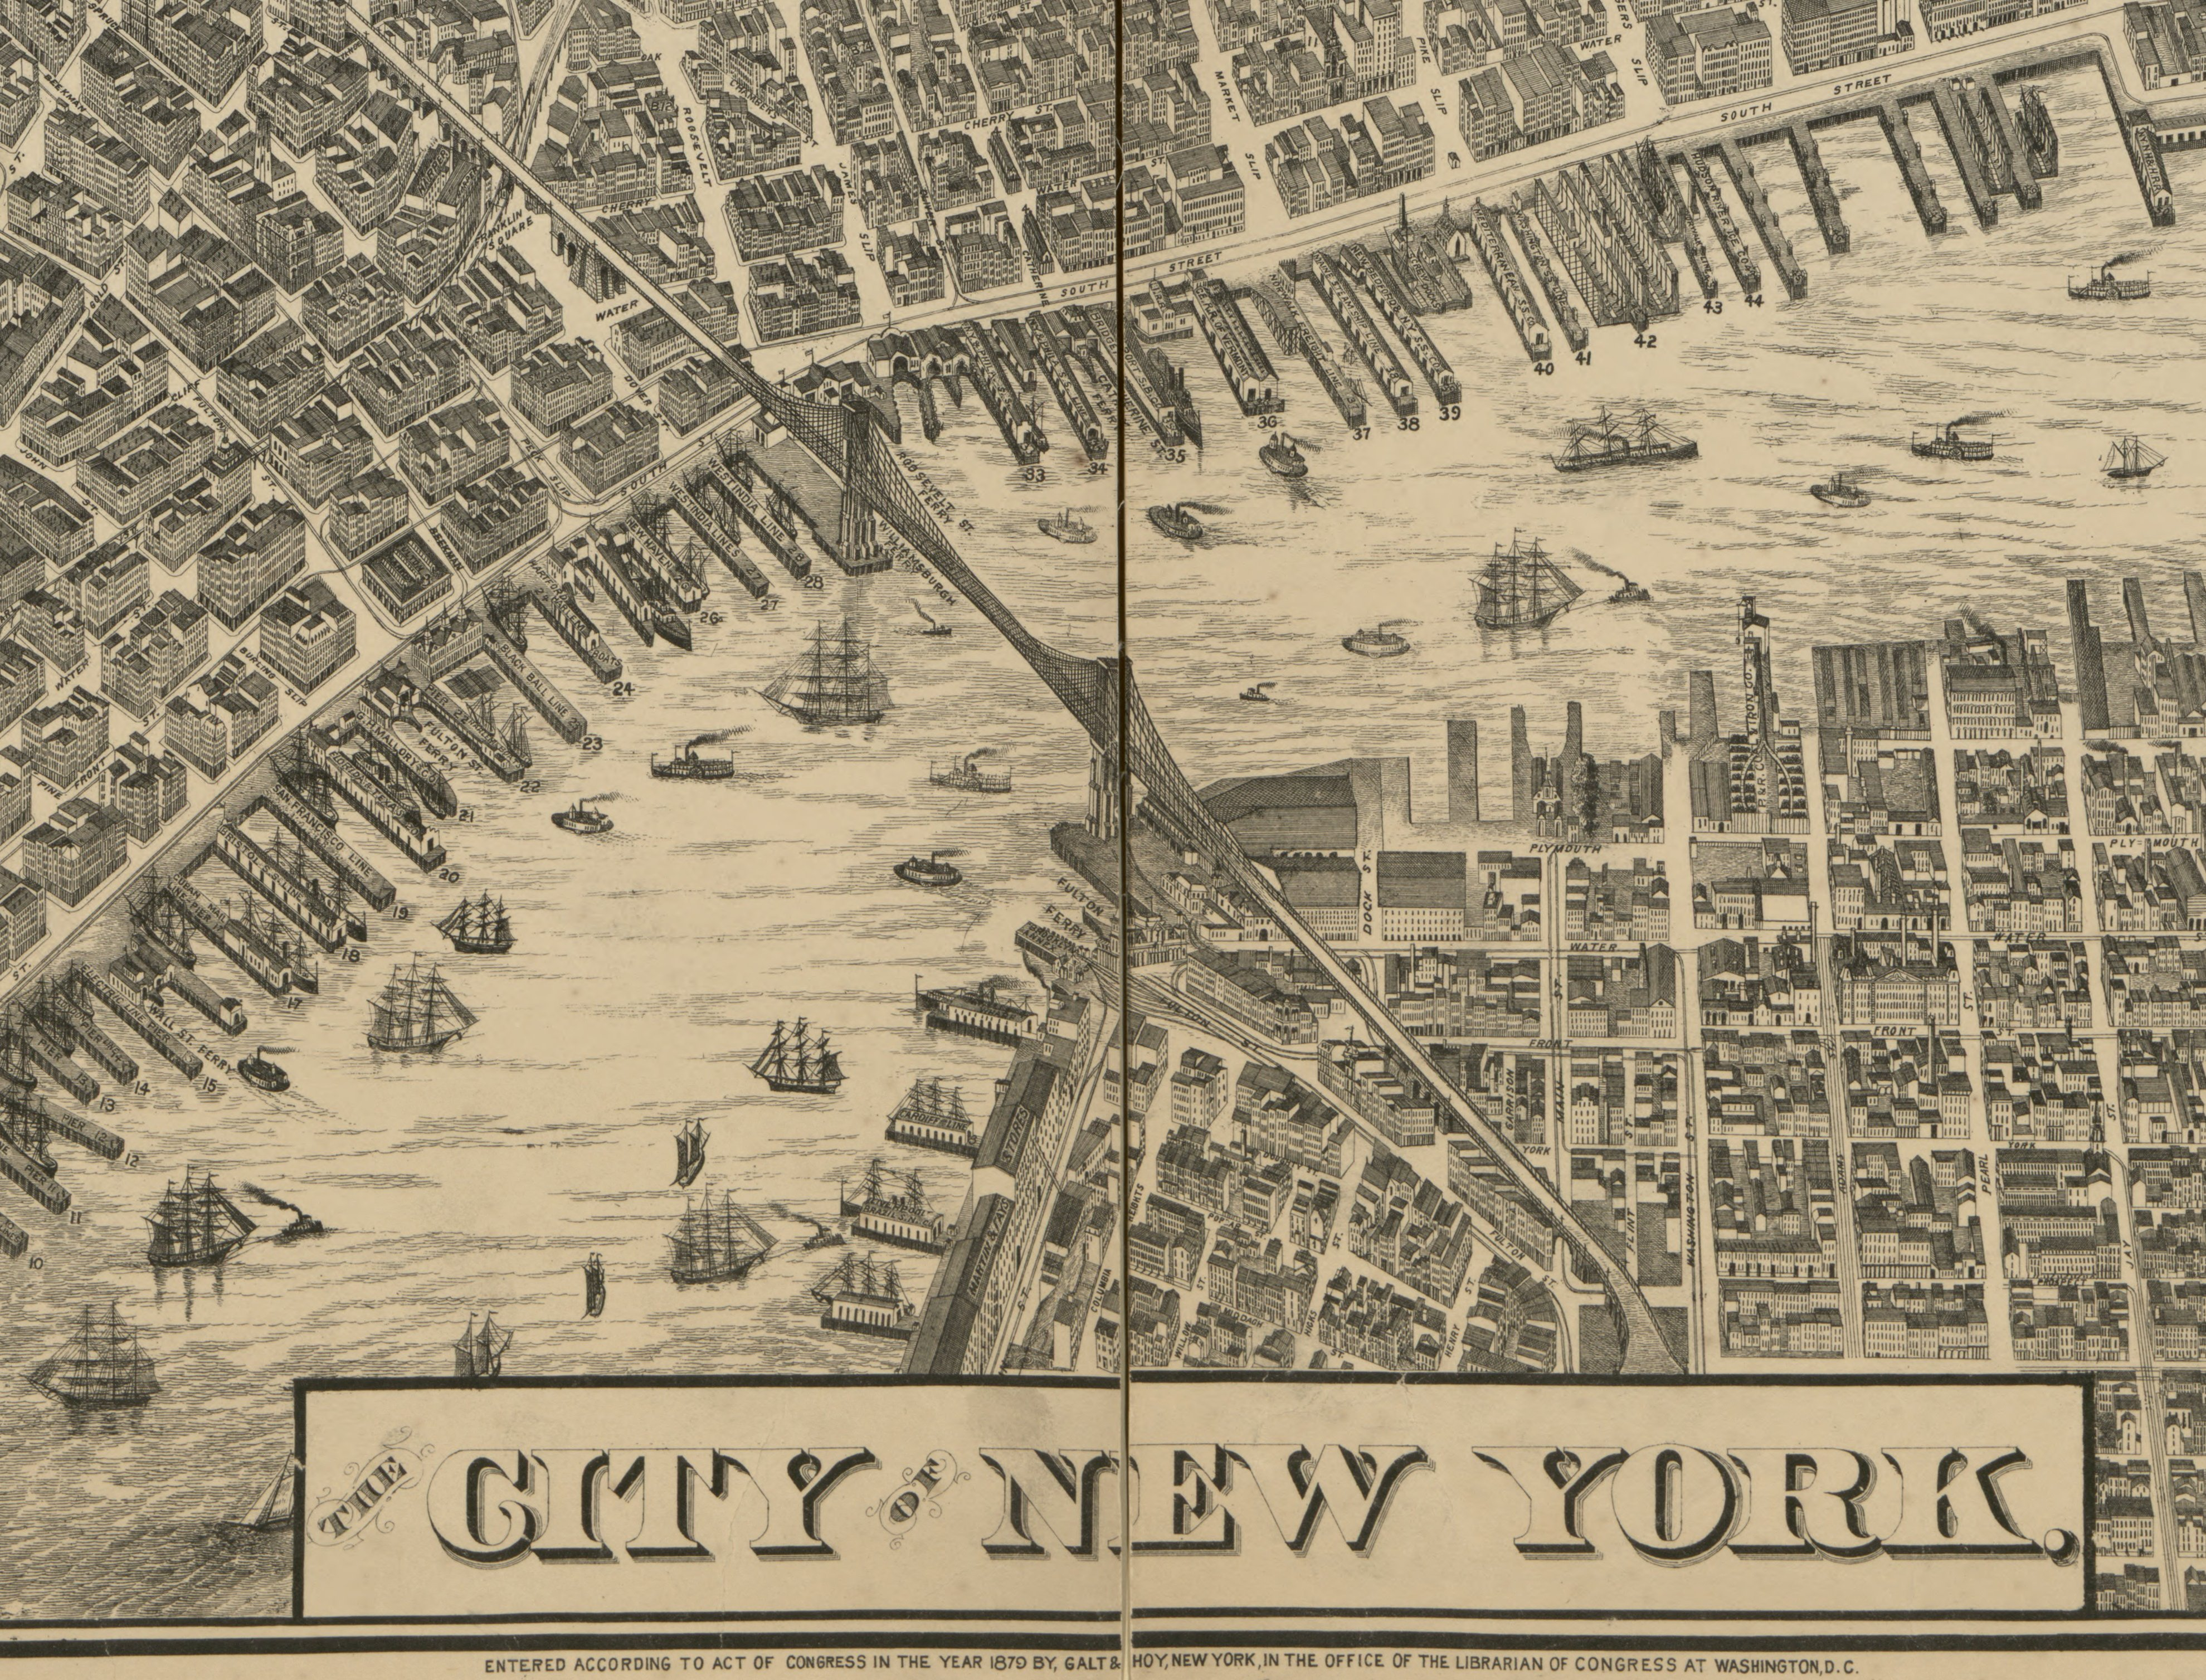 Taylor_Map_-_City_of_New_York.jpg